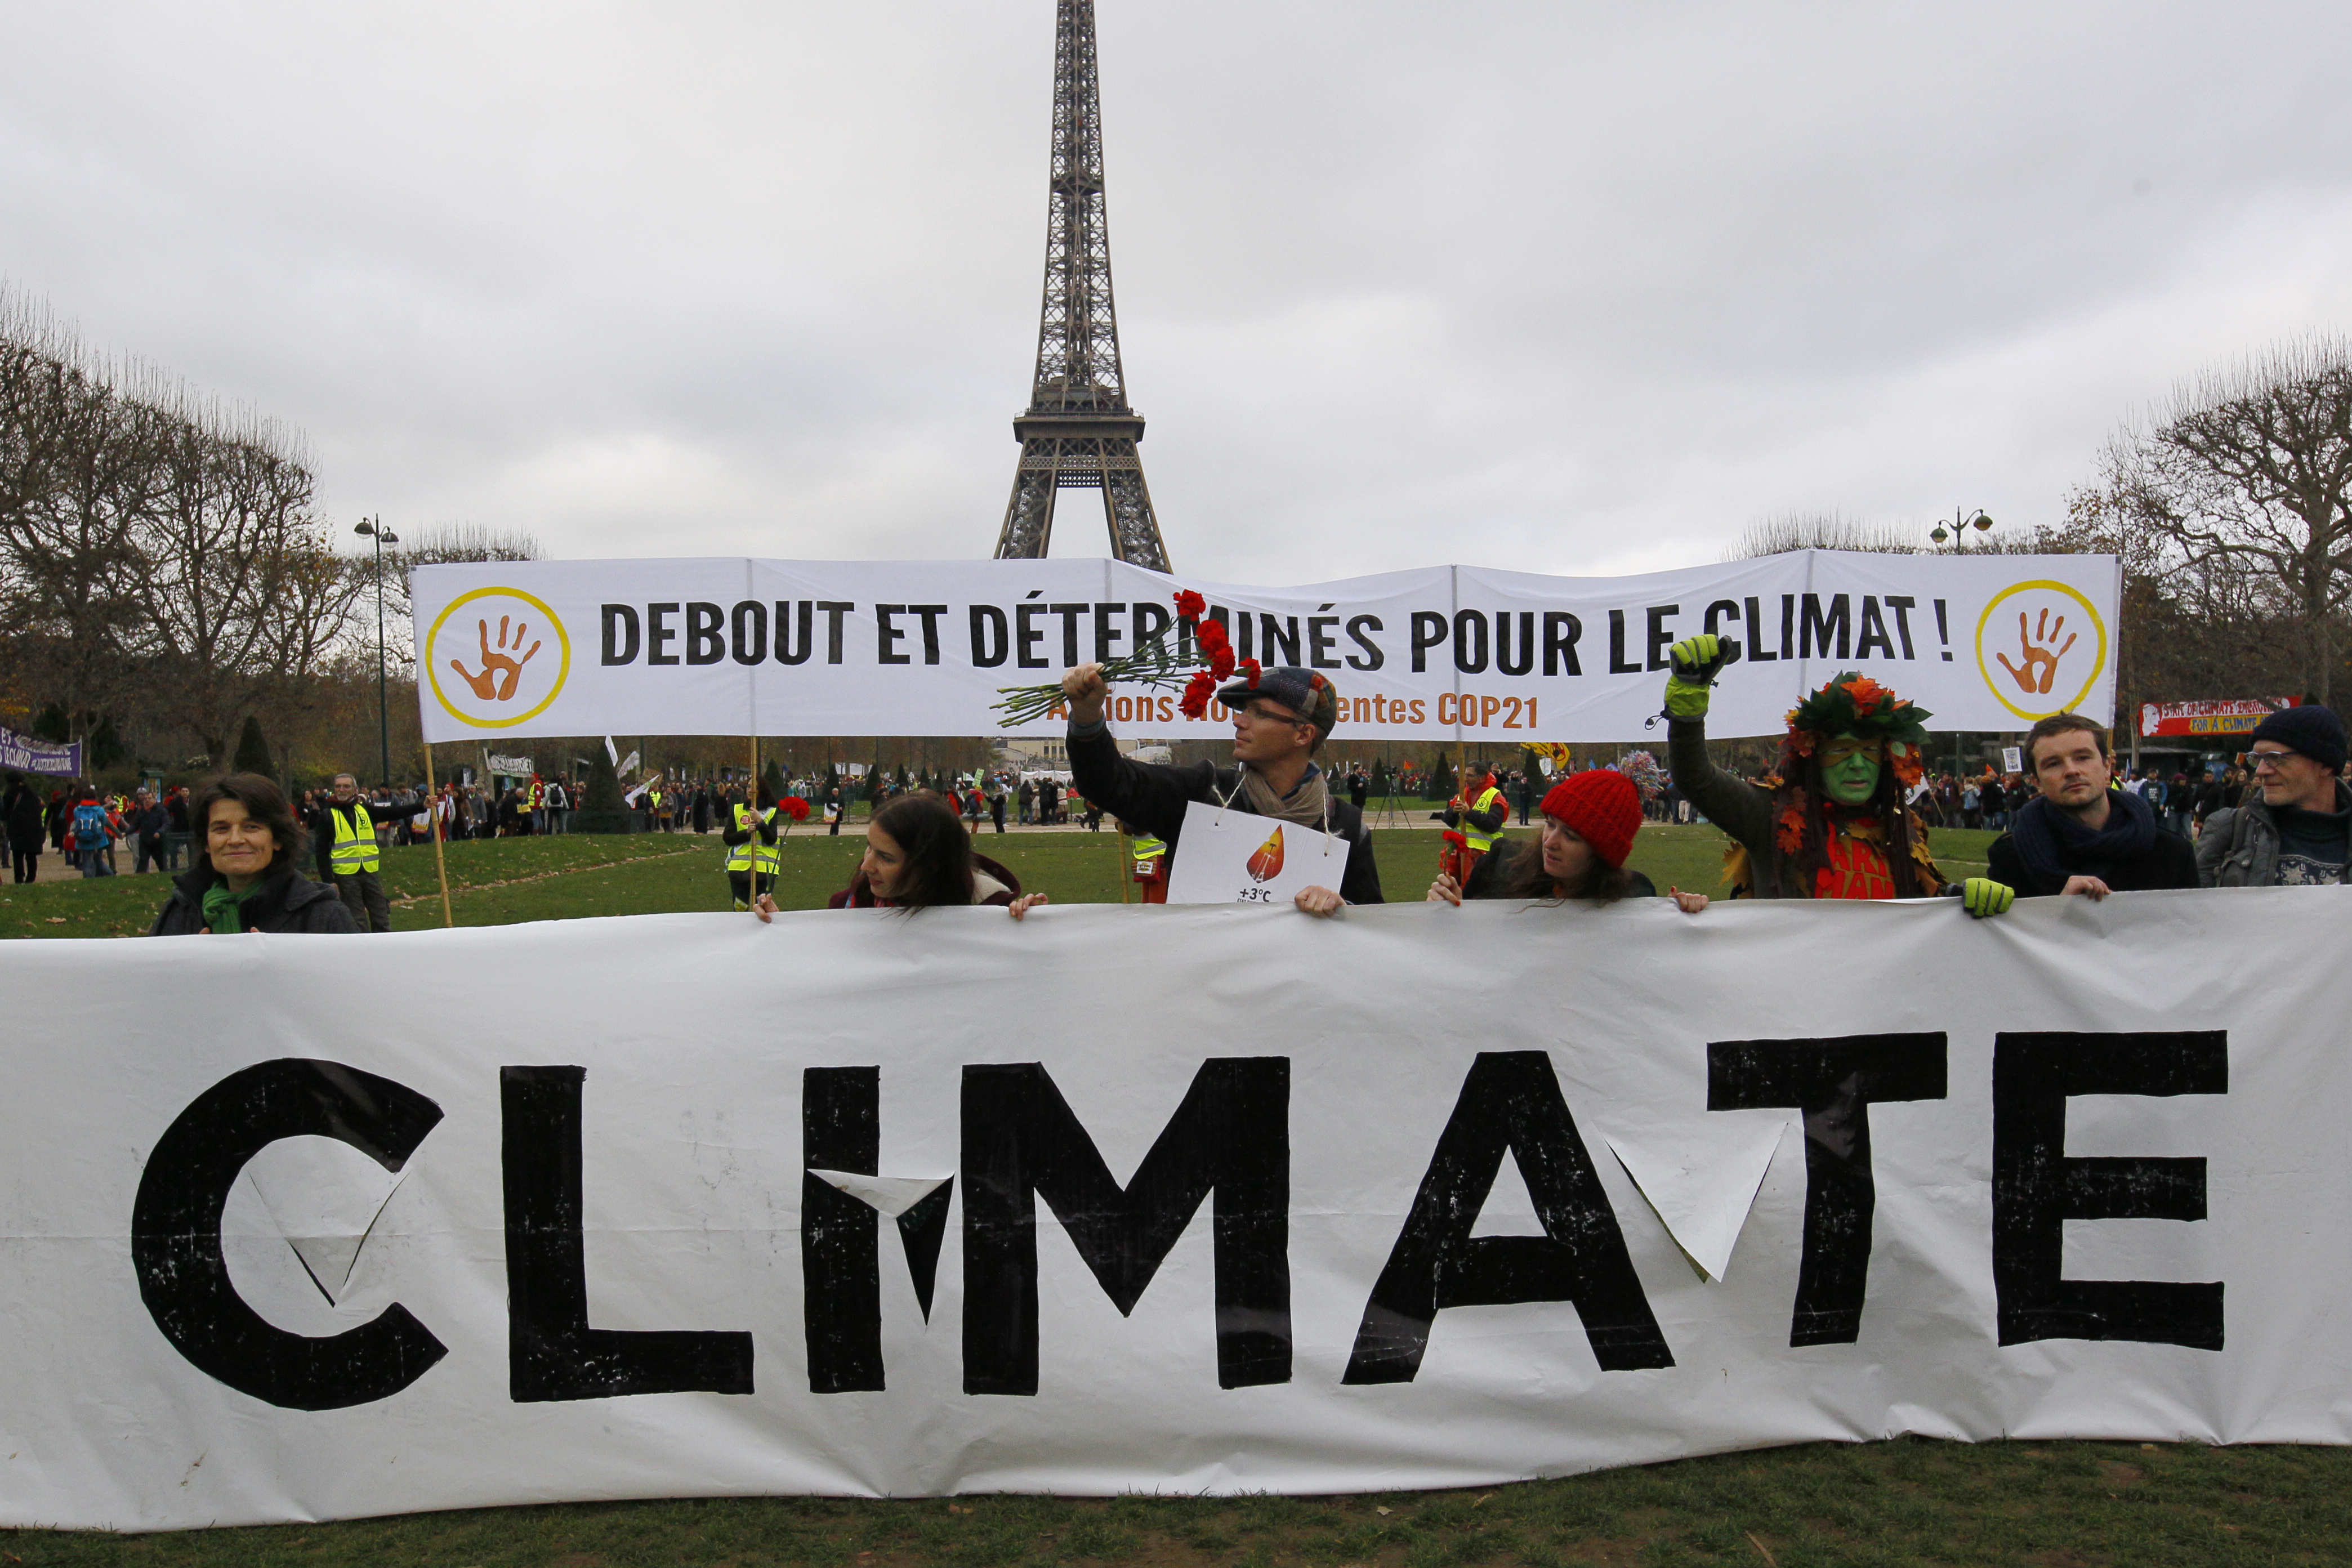 """Environmentalists hold a banner that reads """"Standing and Determined for the Climate"""" at a climate conference protest demonstration near the Eiffel Tower in Paris, France, Dec. 12, 2015."""